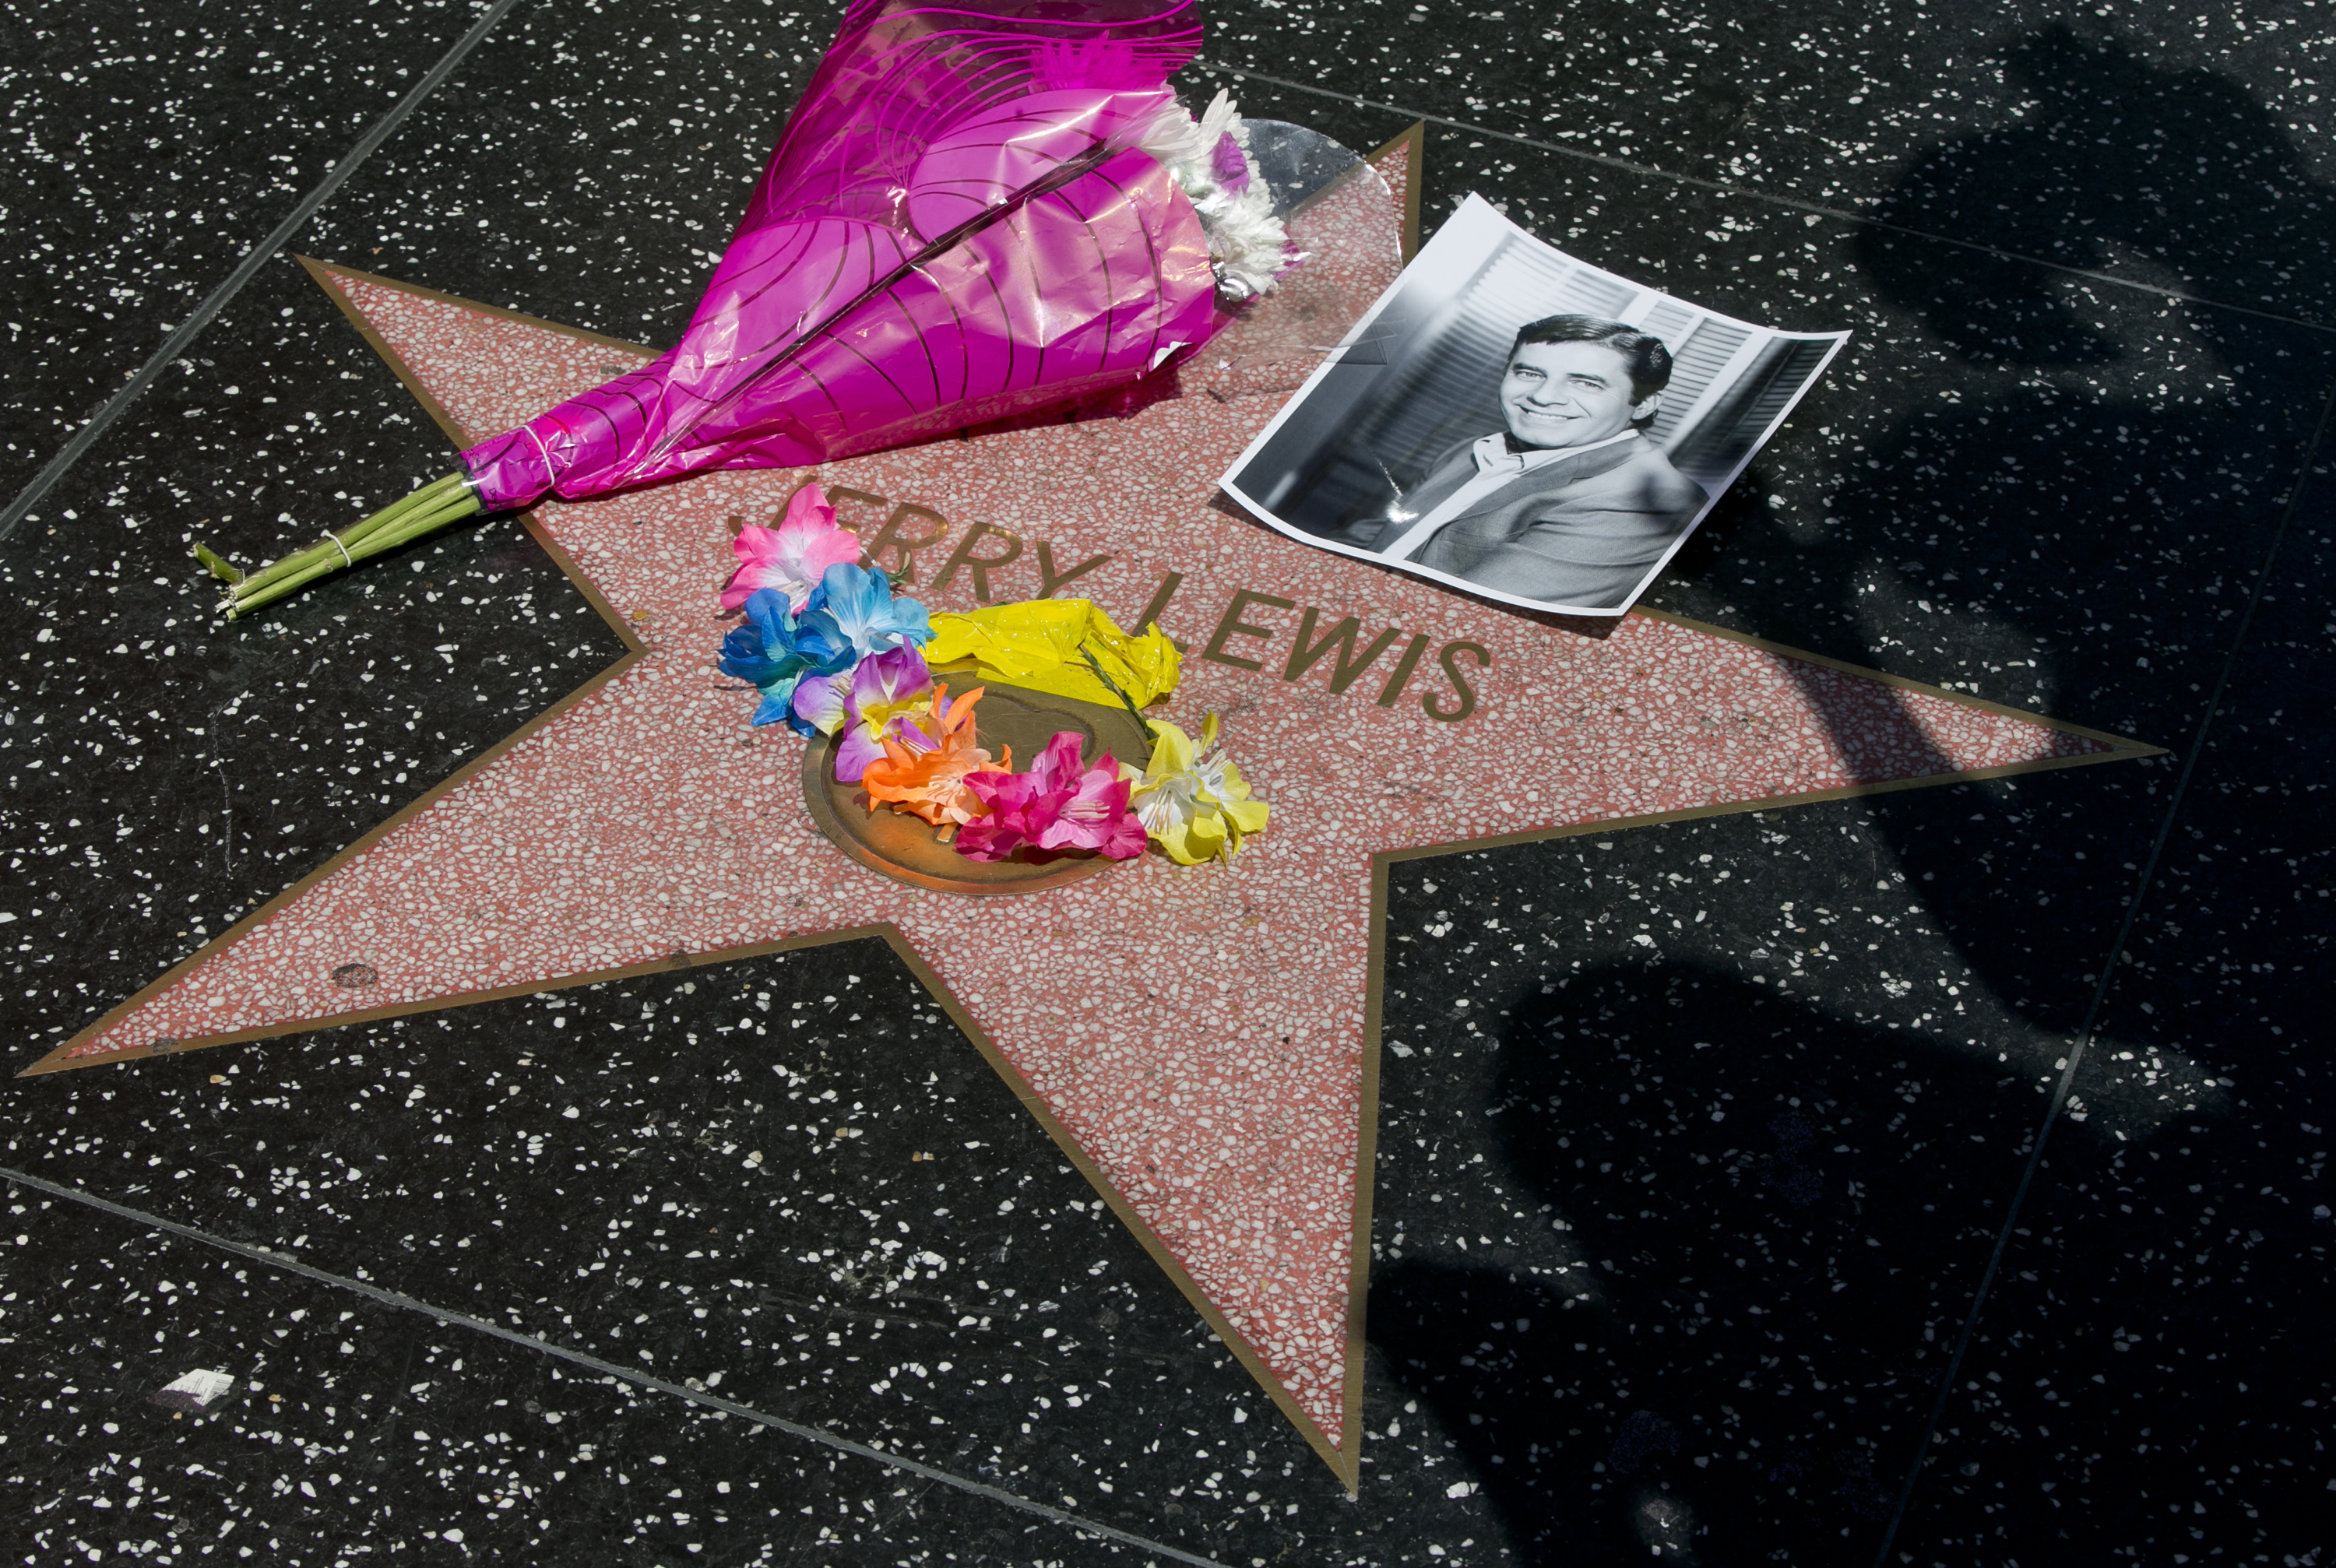 Flowers in memory of comedian Jerry Lewis lie on his star on the Hollywood Walk of Fame near the Dolby Theatre, in Los Angeles on Sunday, Aug. 20, 2017. Lewis, the comedian and director whose fundraising telethons became as famous as his hit movies, died Sunday in Las Vegas, according to his publicist. He was 91. (AP Photo/Damian Dovarganes)